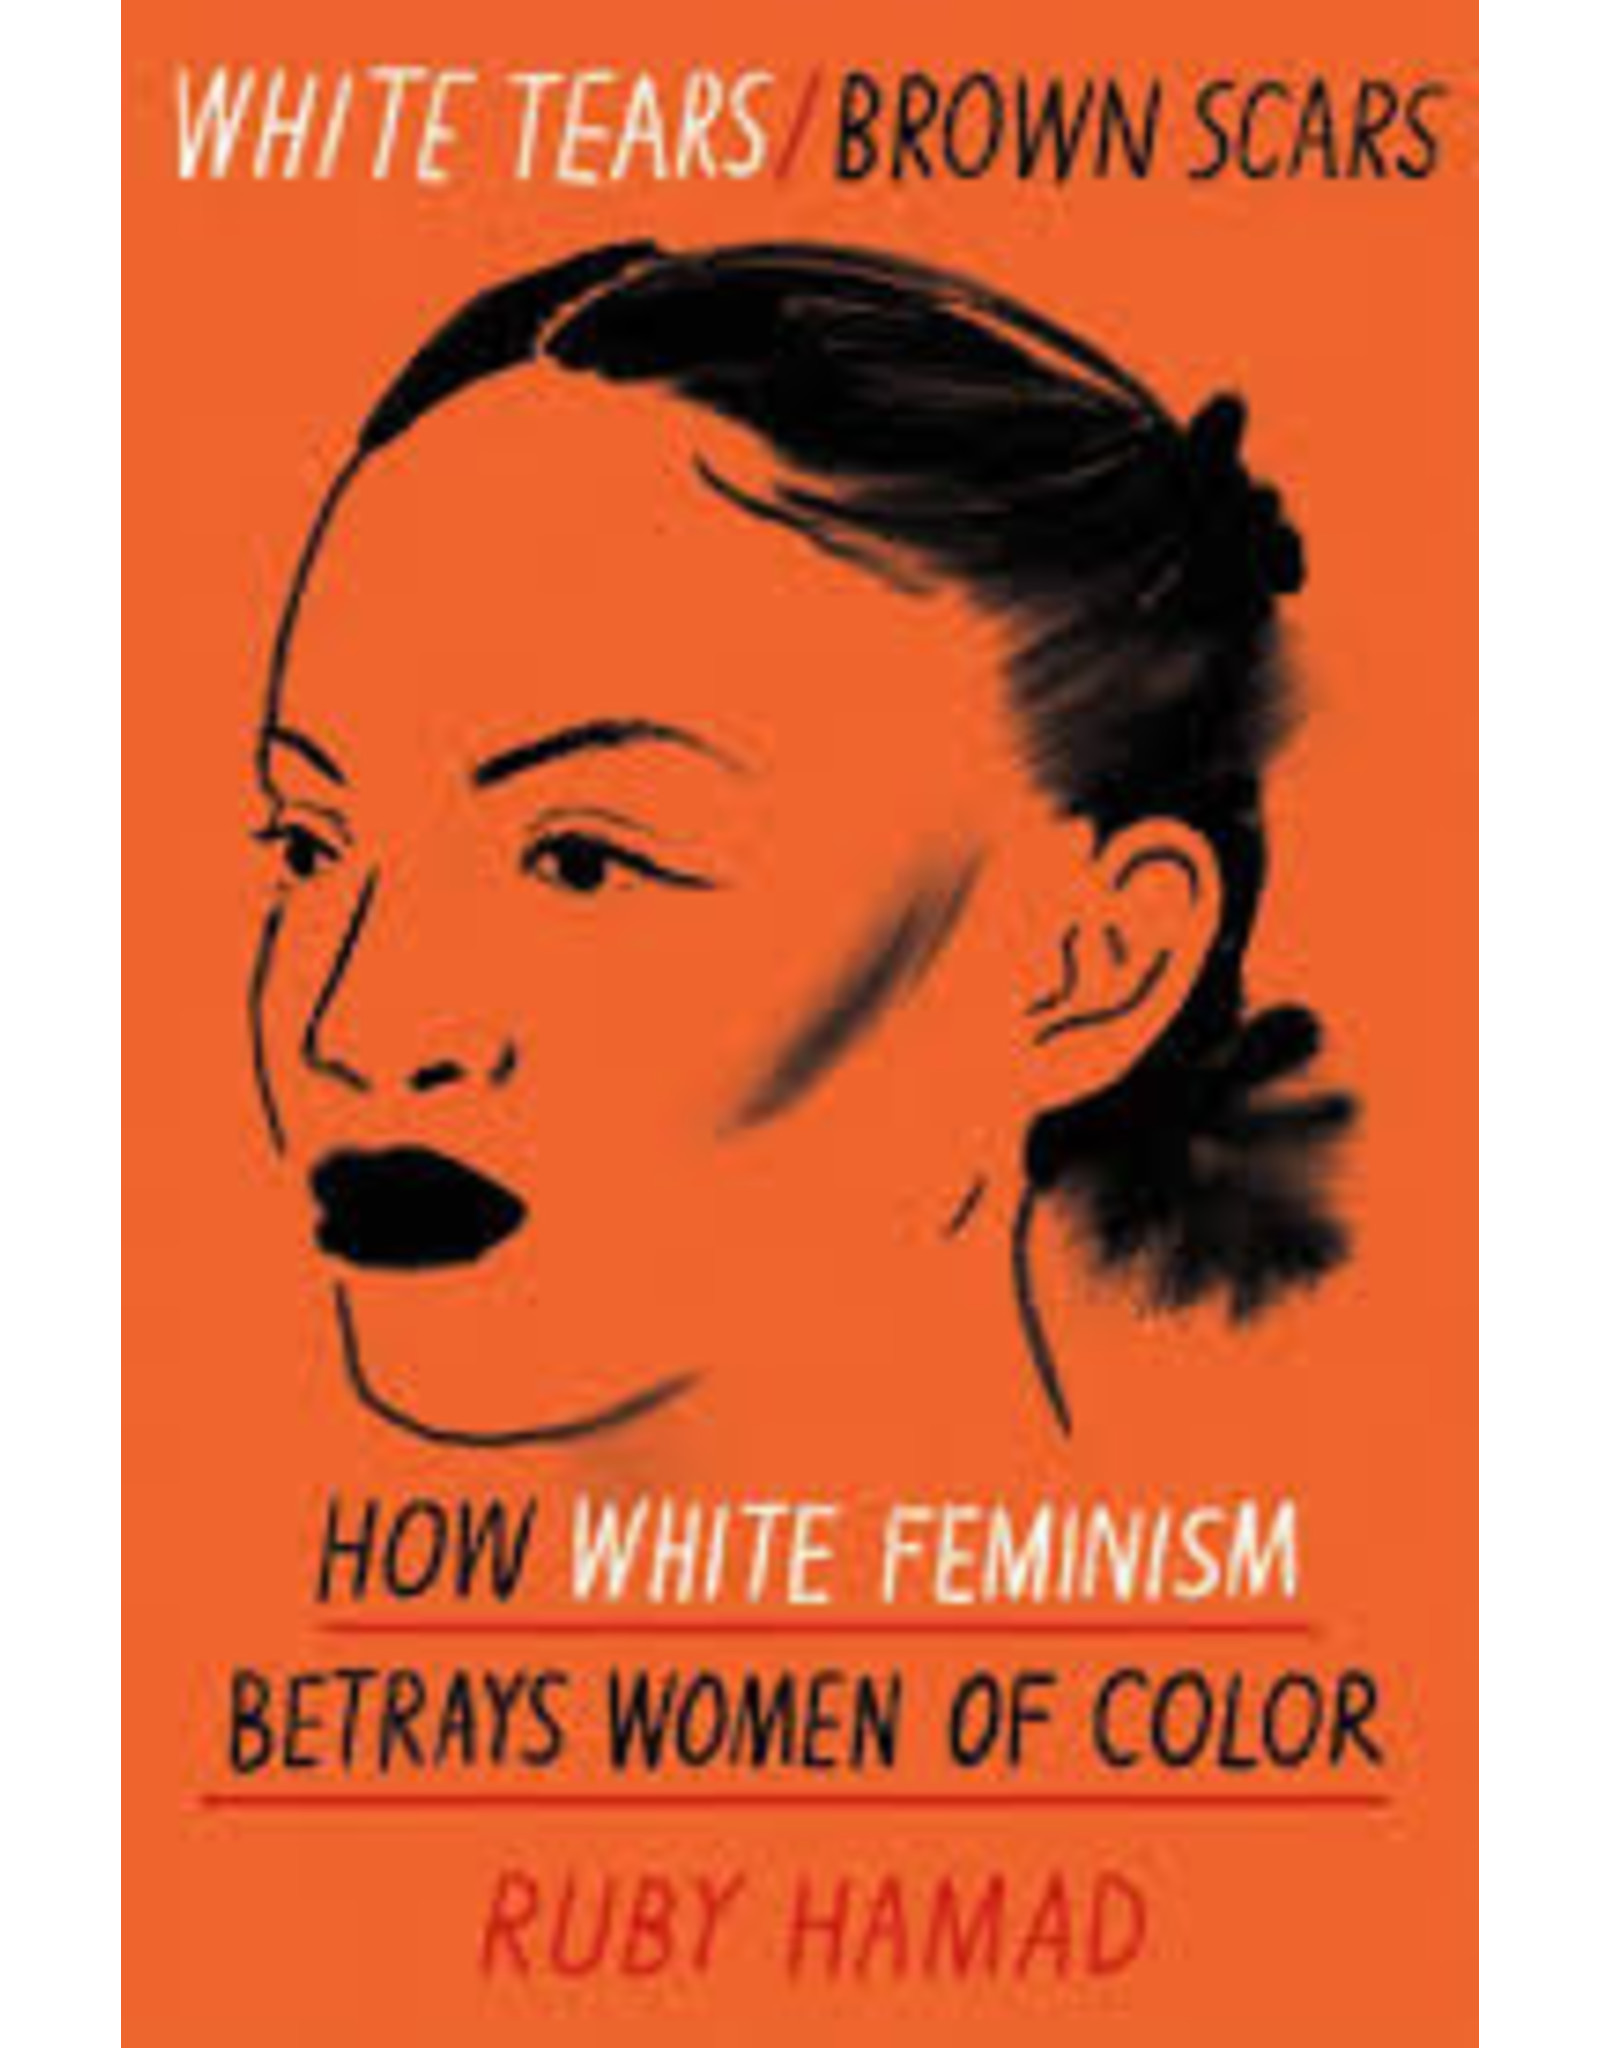 Books White Tears/Brown Scars: How White Feminism Betrays Women of Color by Ruby Hamad